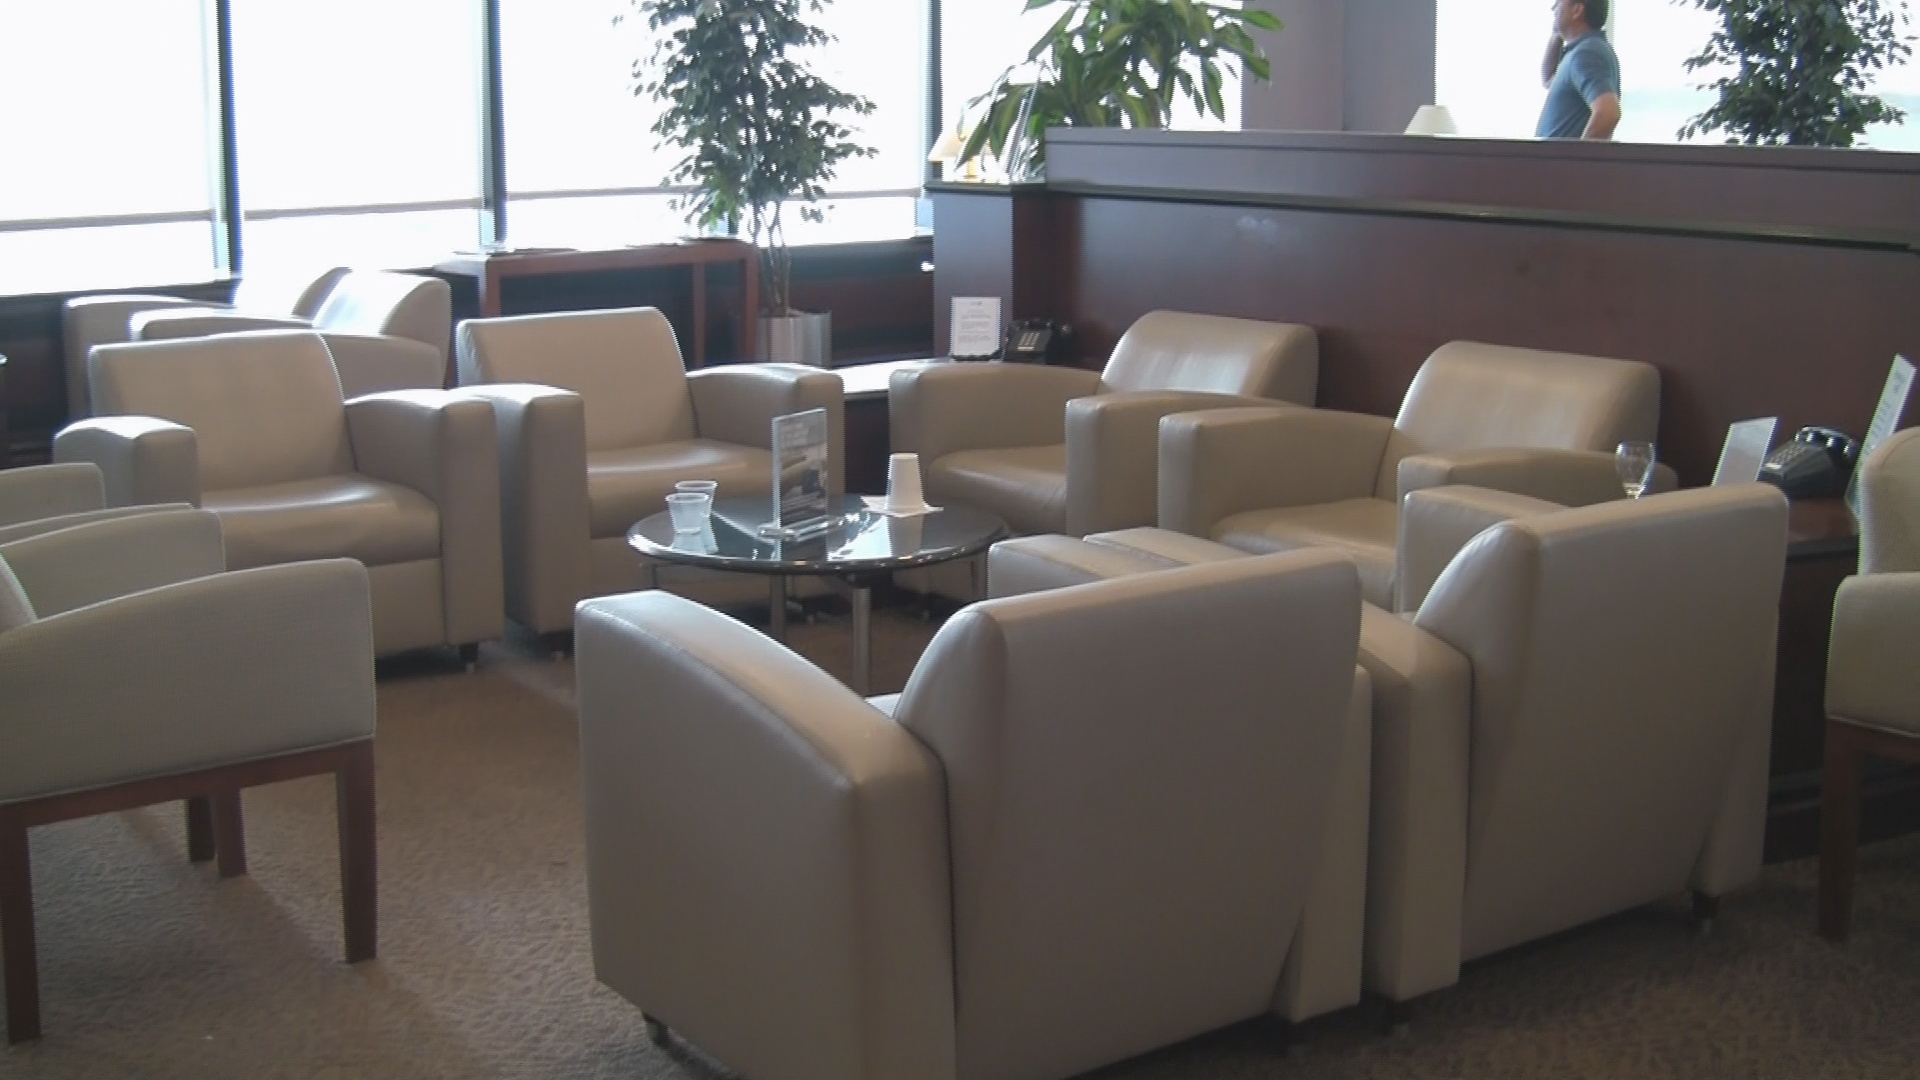 United Club At Cleveland Hopkins International Cle